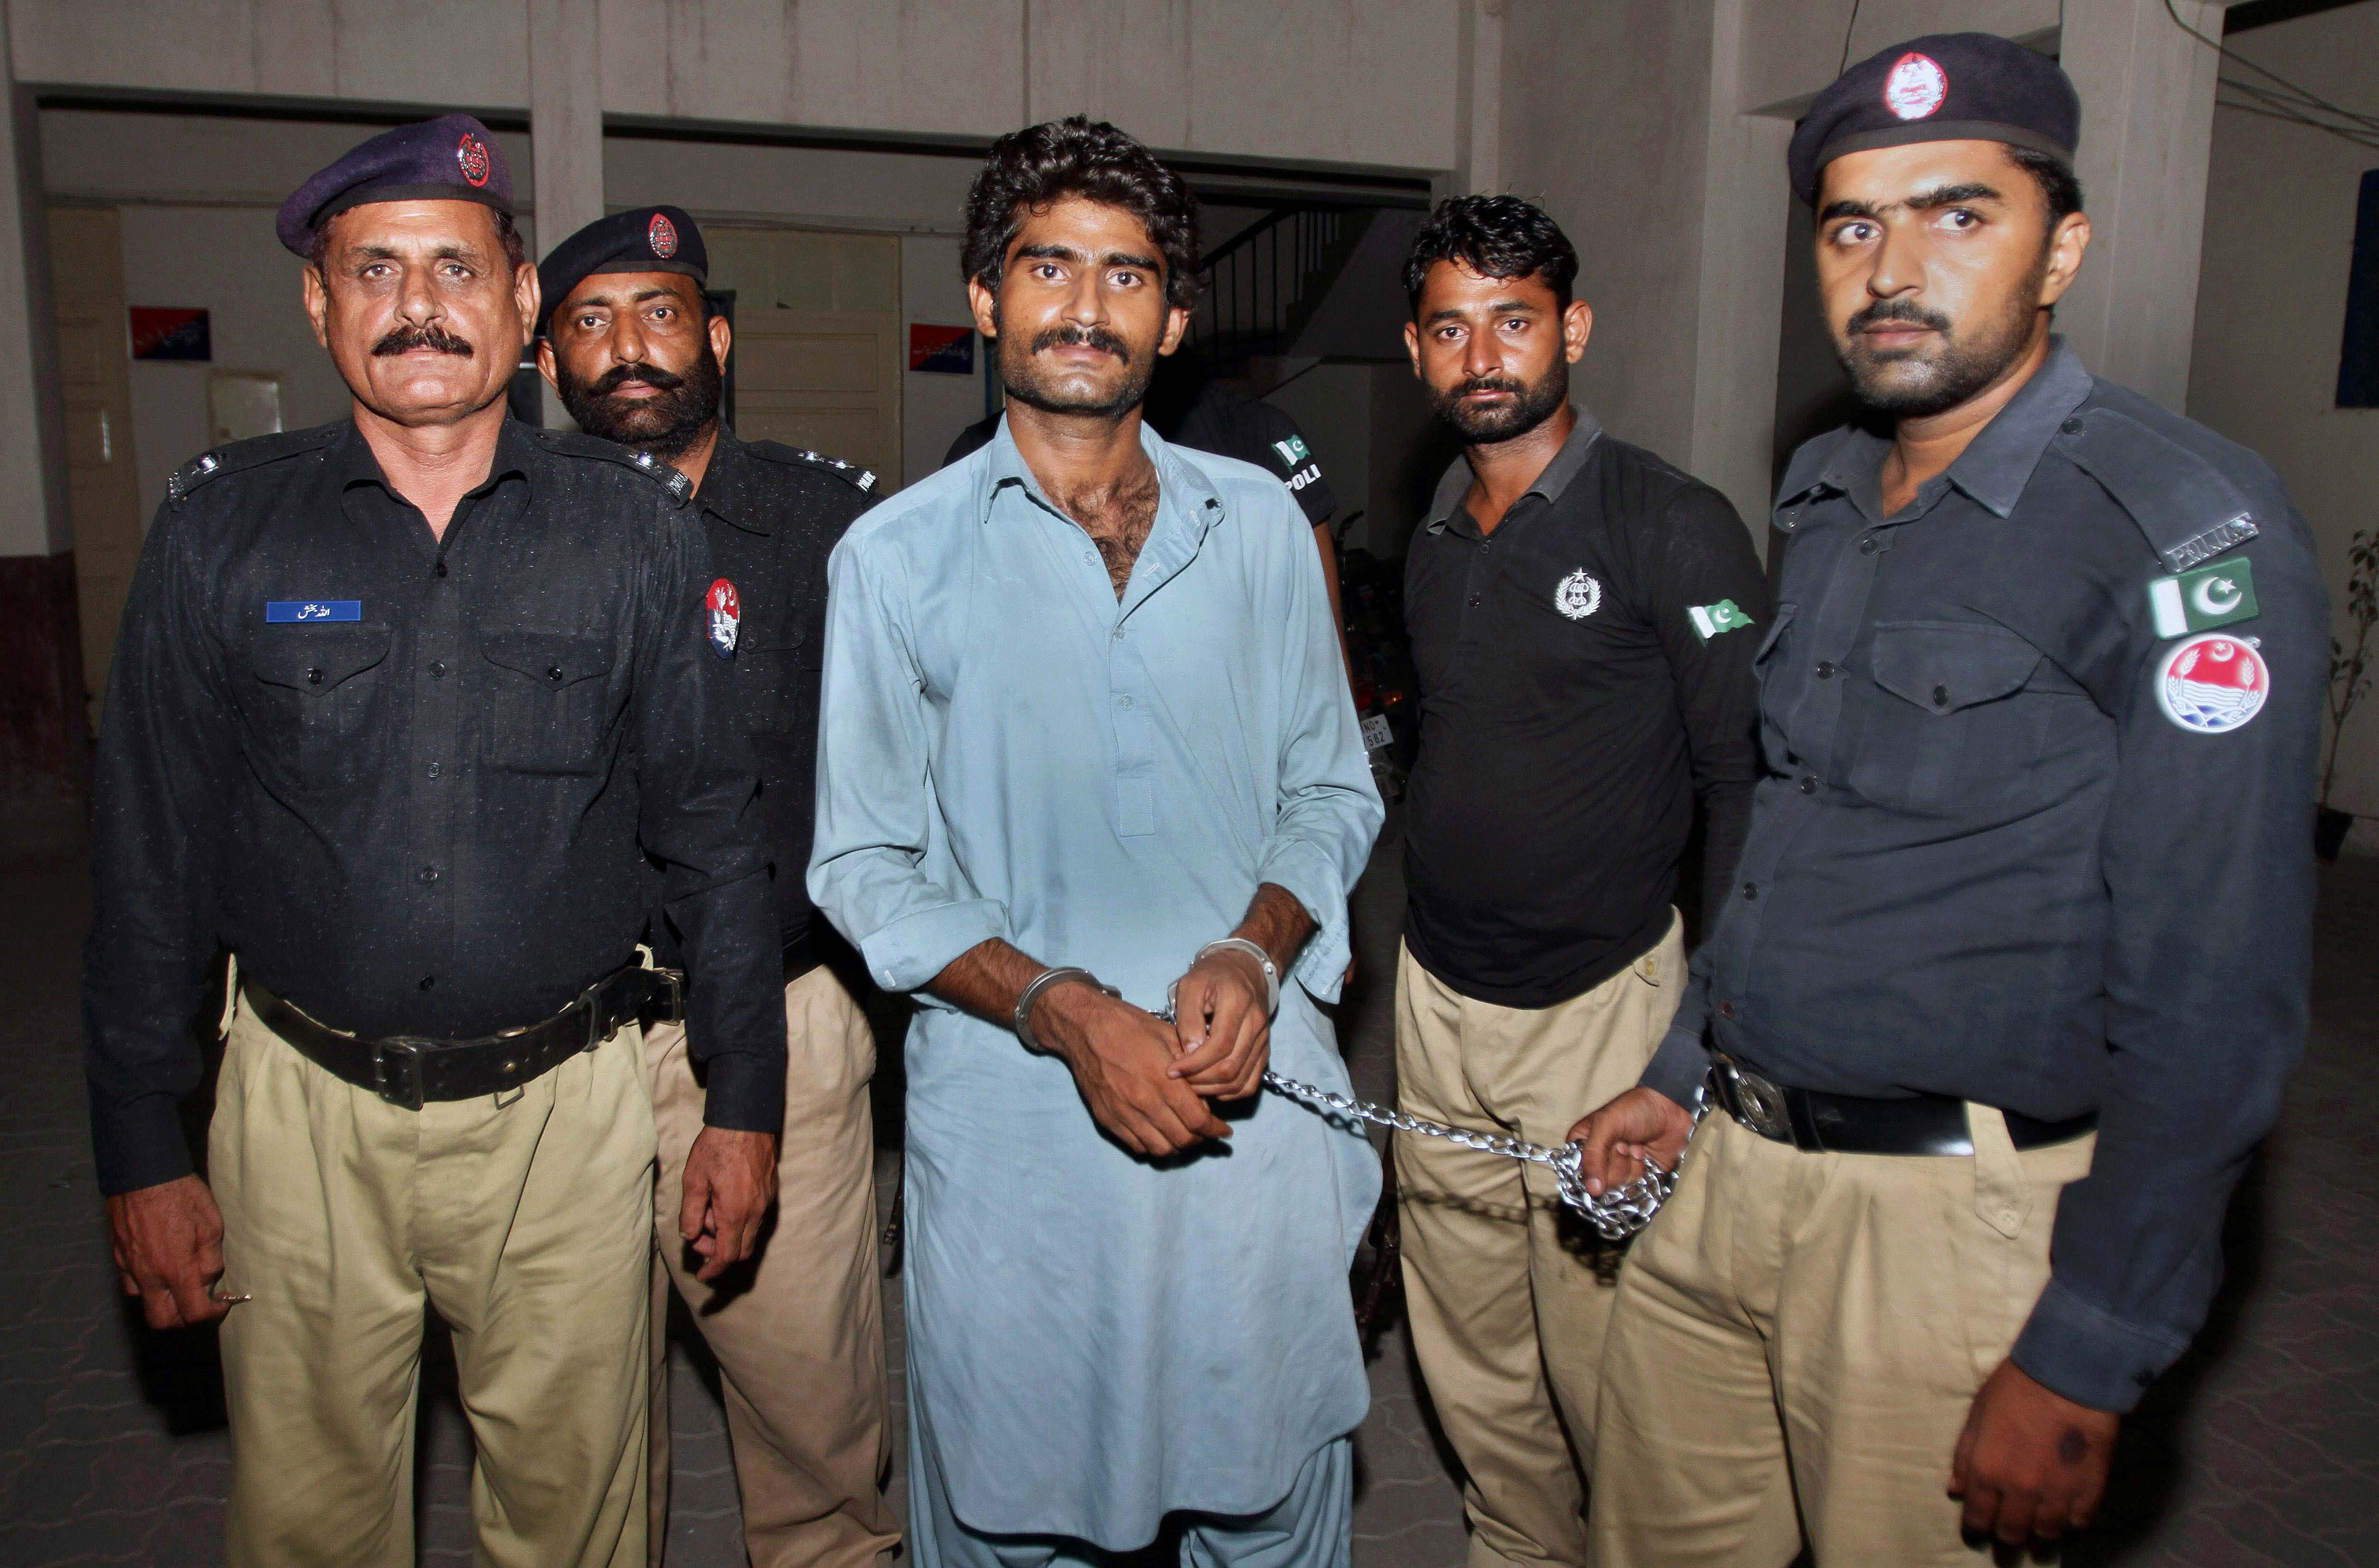 Pakistani police officers present Waseem Azeem, the brother of slain model Qandeel Baloch, before the media following his arrest at a police station in Multan, Pakistan on Sunday, July 17, 2016. Photo: AP